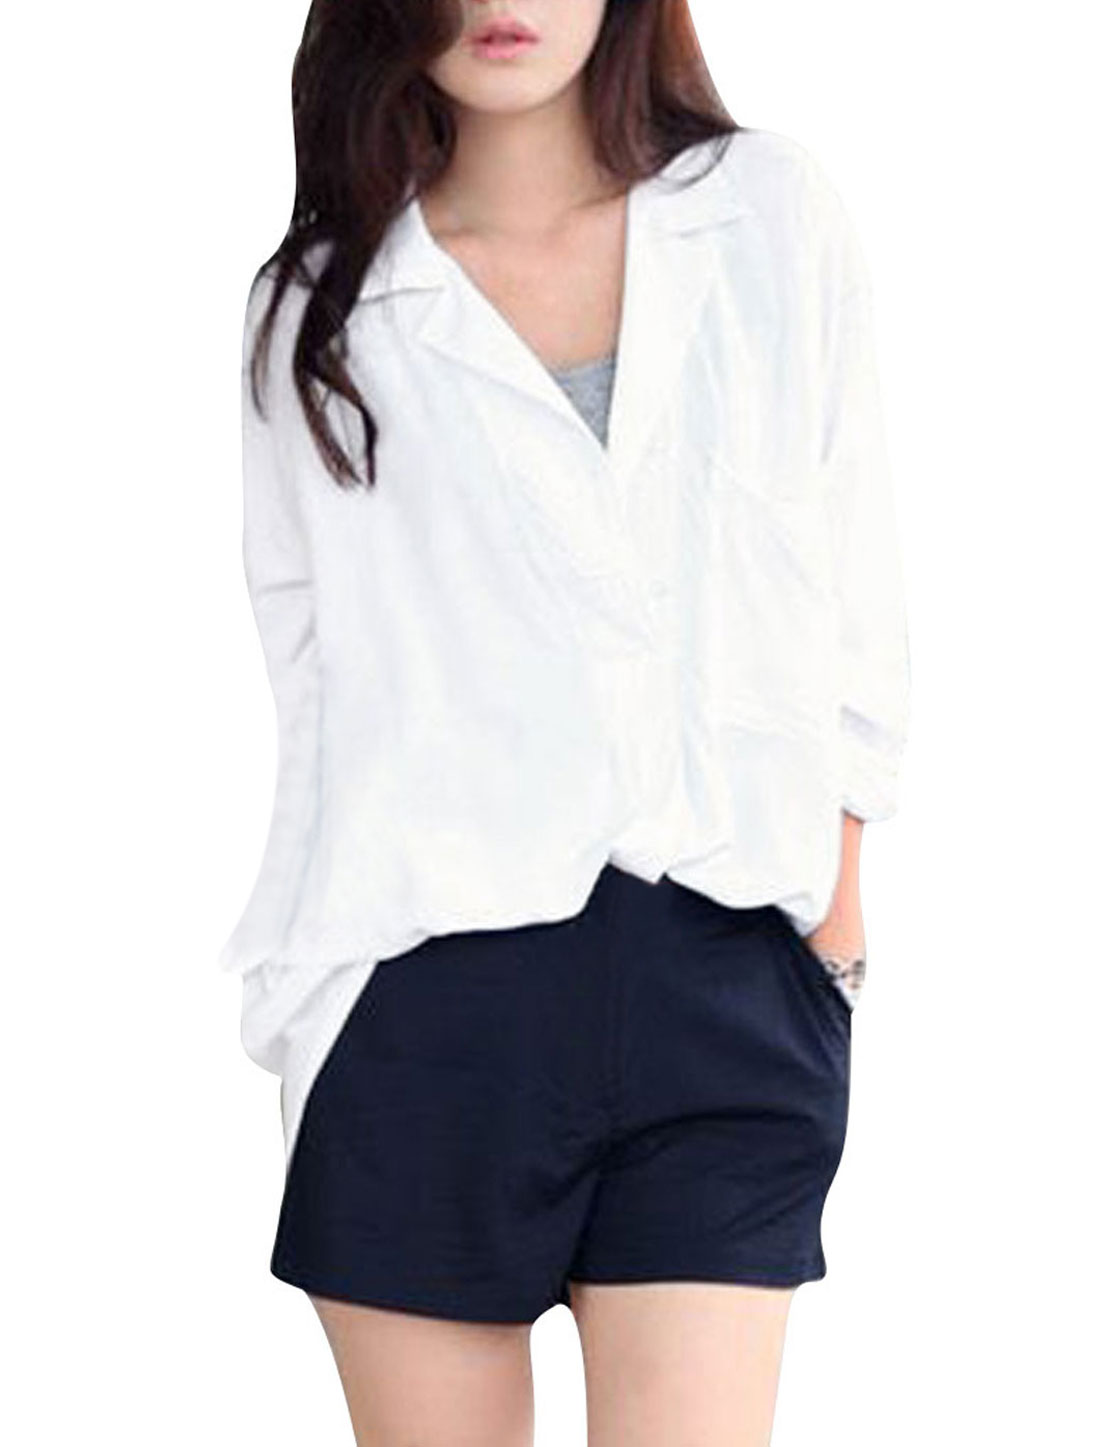 Women's Stylish Wing Collar Round Hem Long Sleeve White S Blouse Top